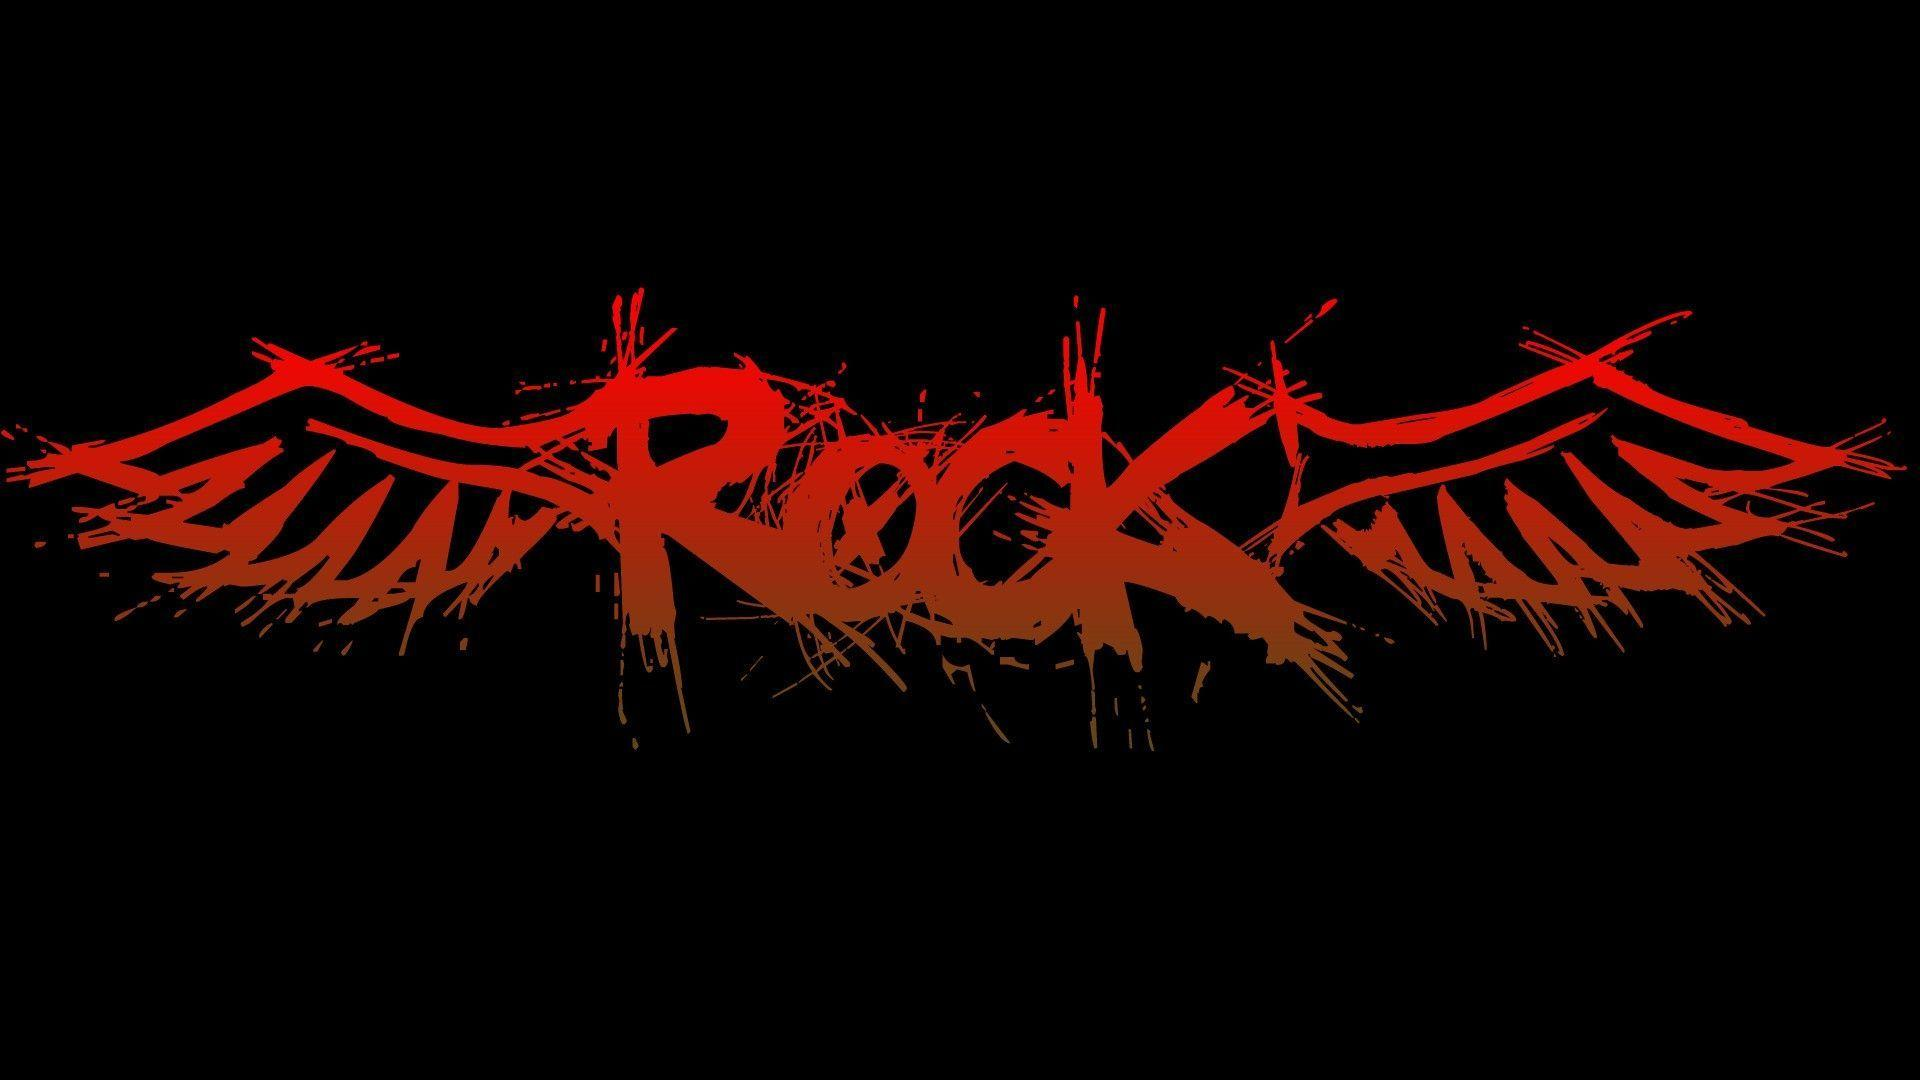 rock wallpaper3 - photo #4